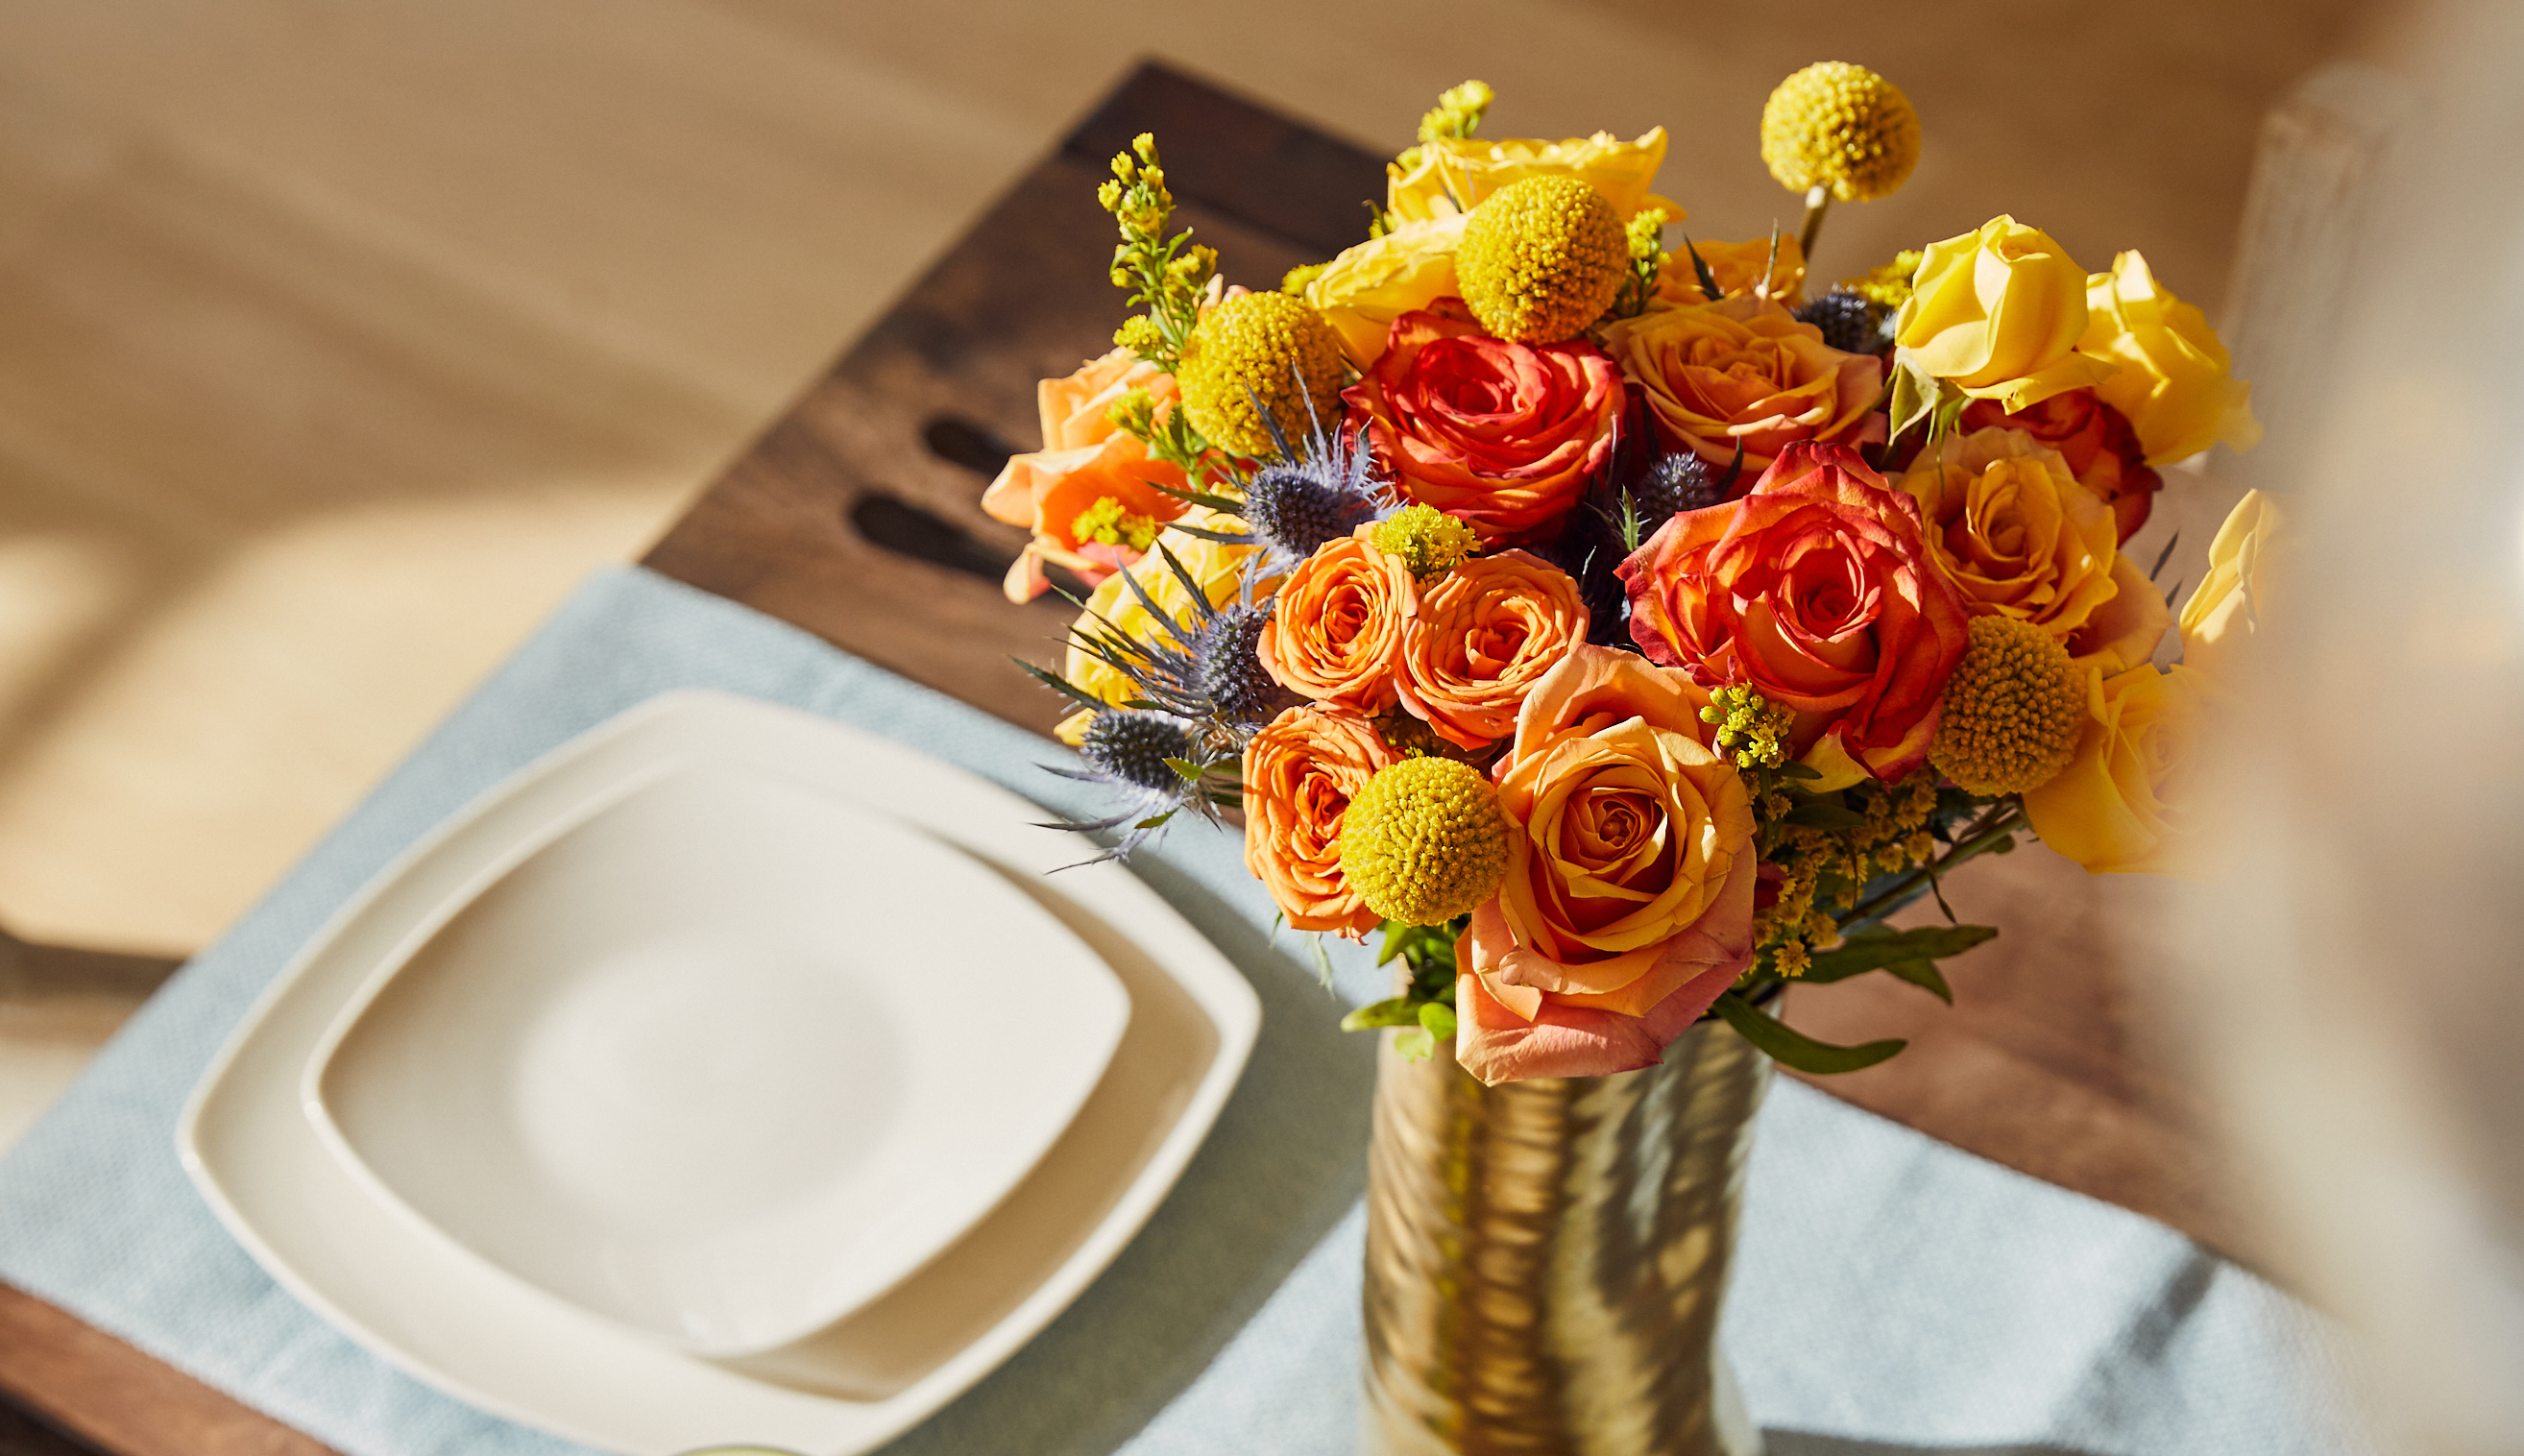 Table set with a lively summer bouquet